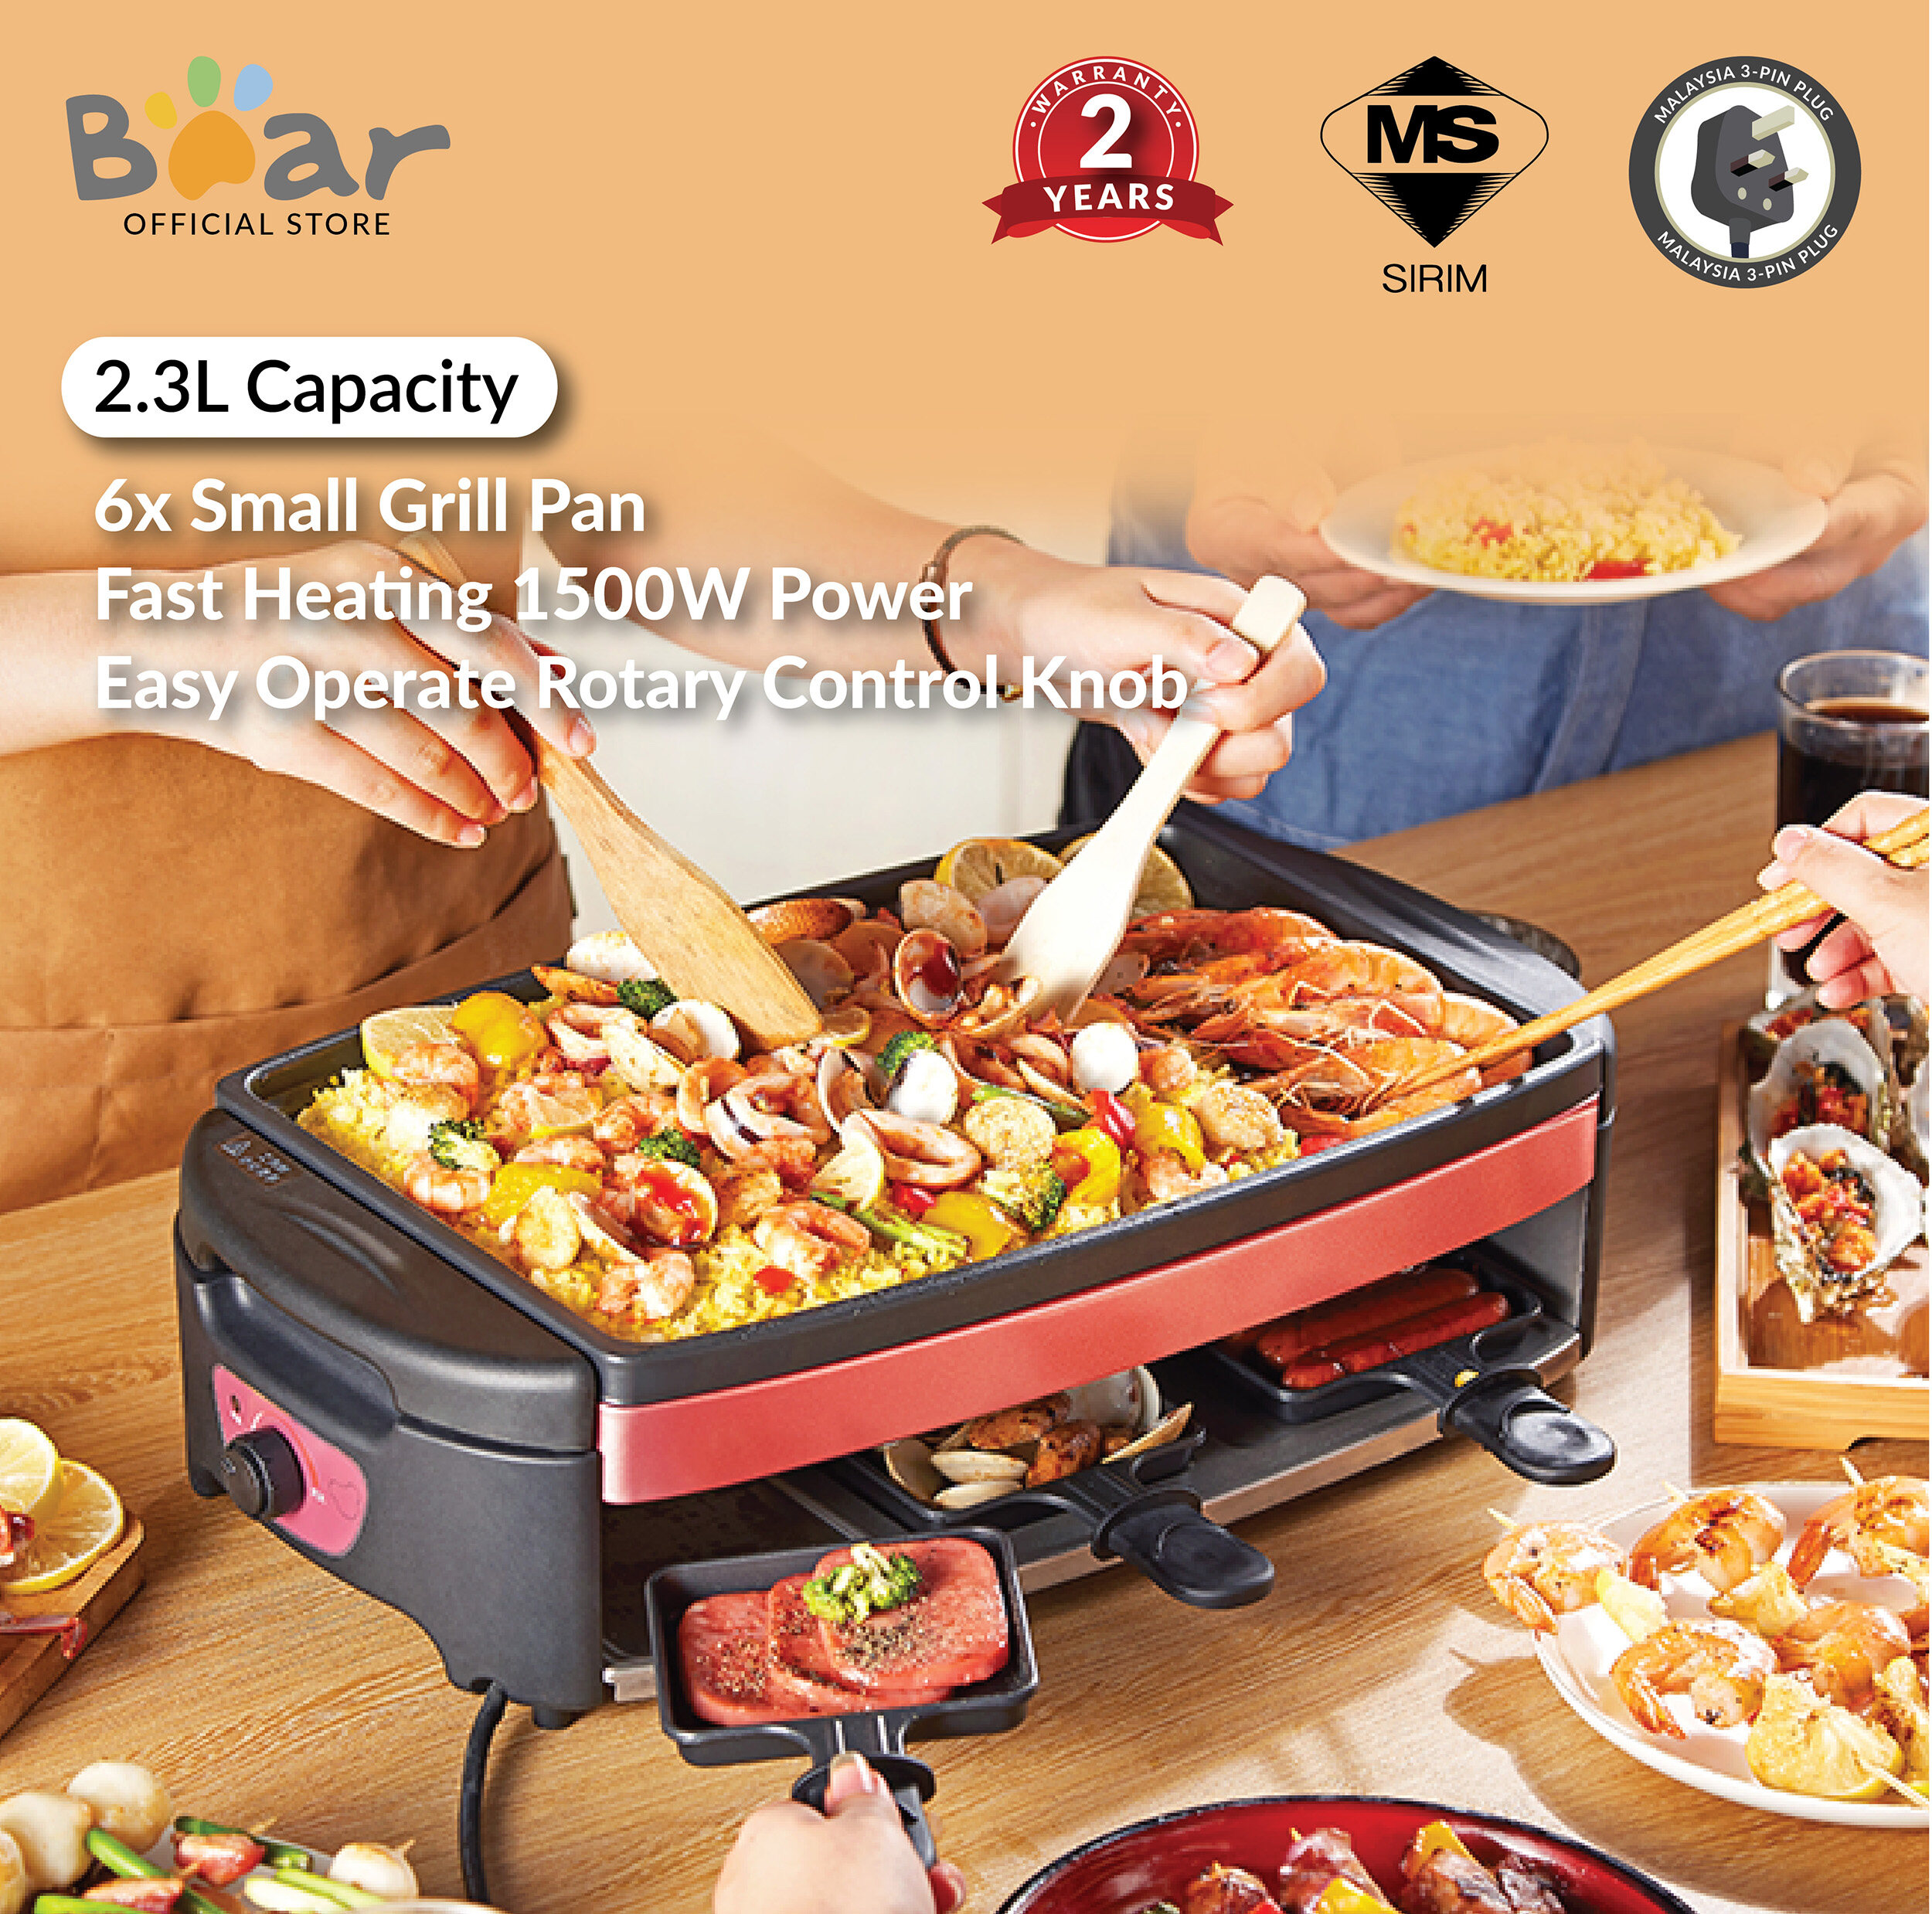 Bear electric grill pan DKL-D15A1 Household electric oven barbecue machine barbecue skewer pot smokeless non-stick removable detachable 3-6 people at the same time enjoy the frying multi-function electric baking pan small baking pan